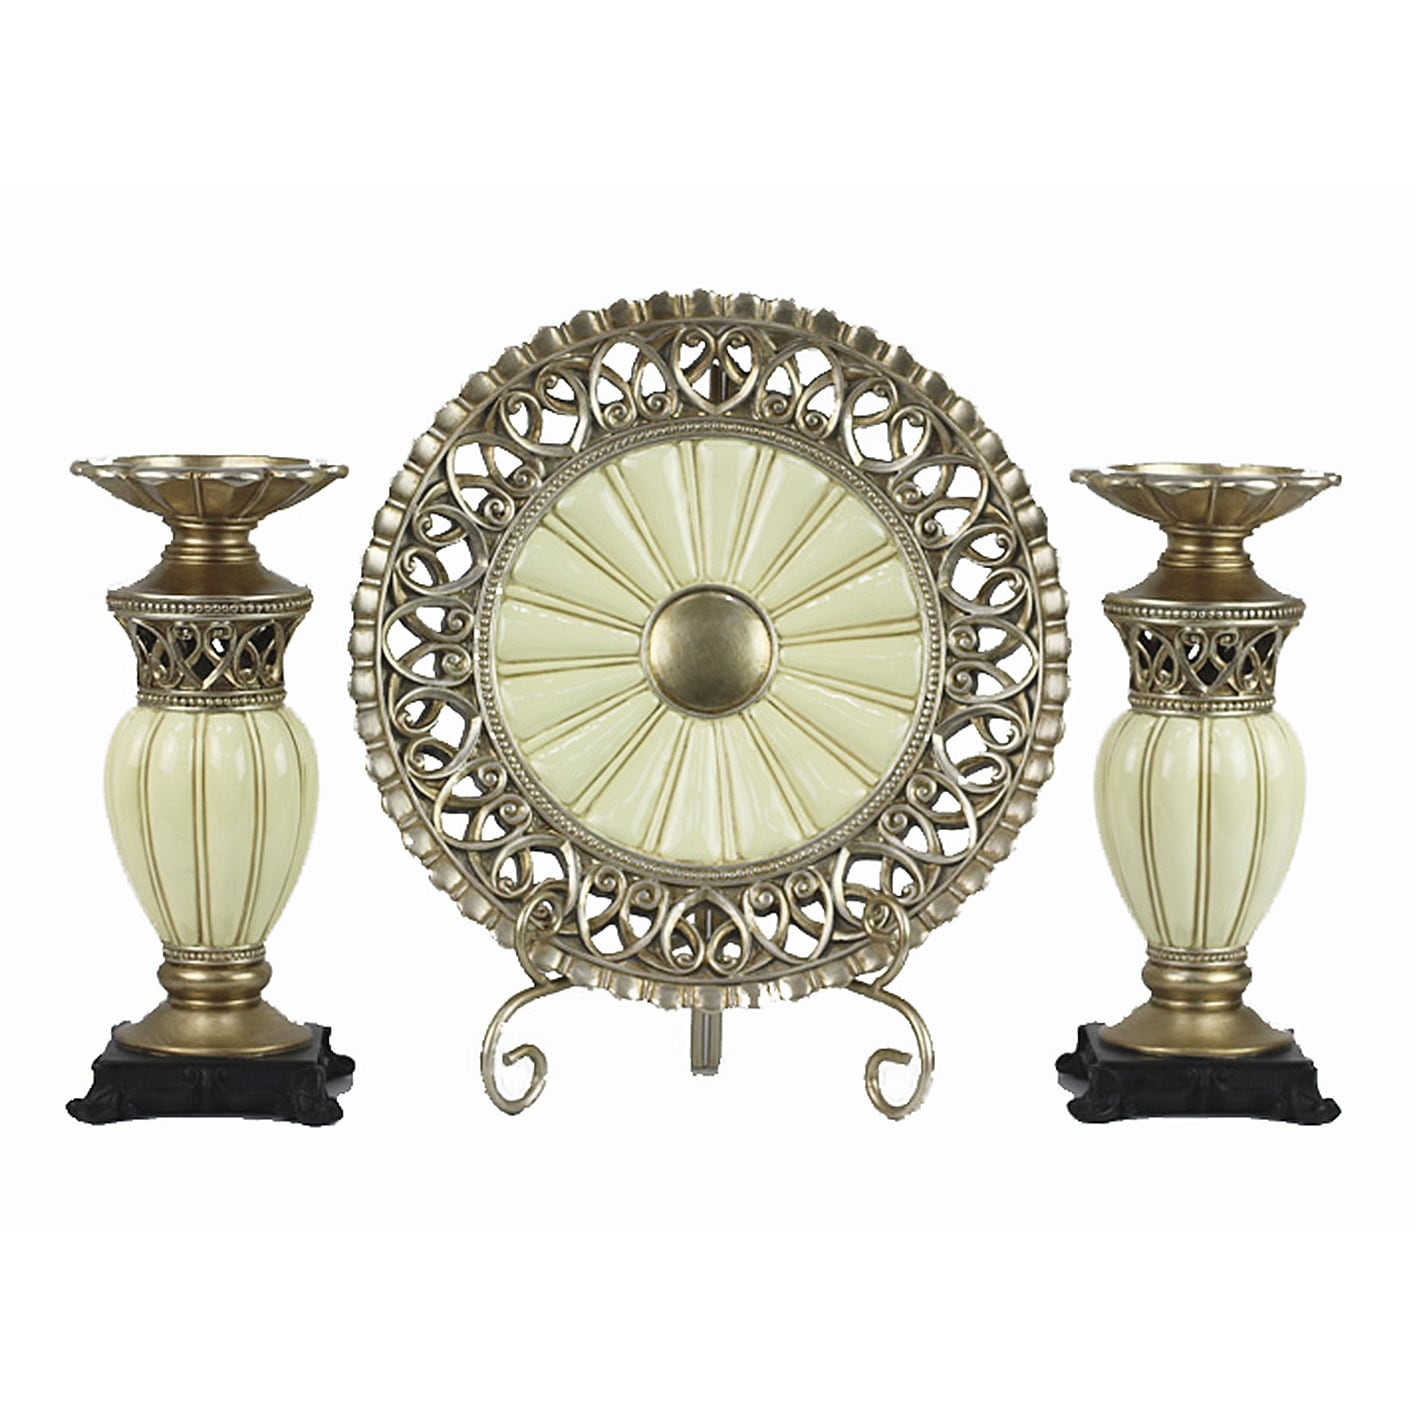 D'Lusso Designs Juliana Collection Four Piece Charger wit...